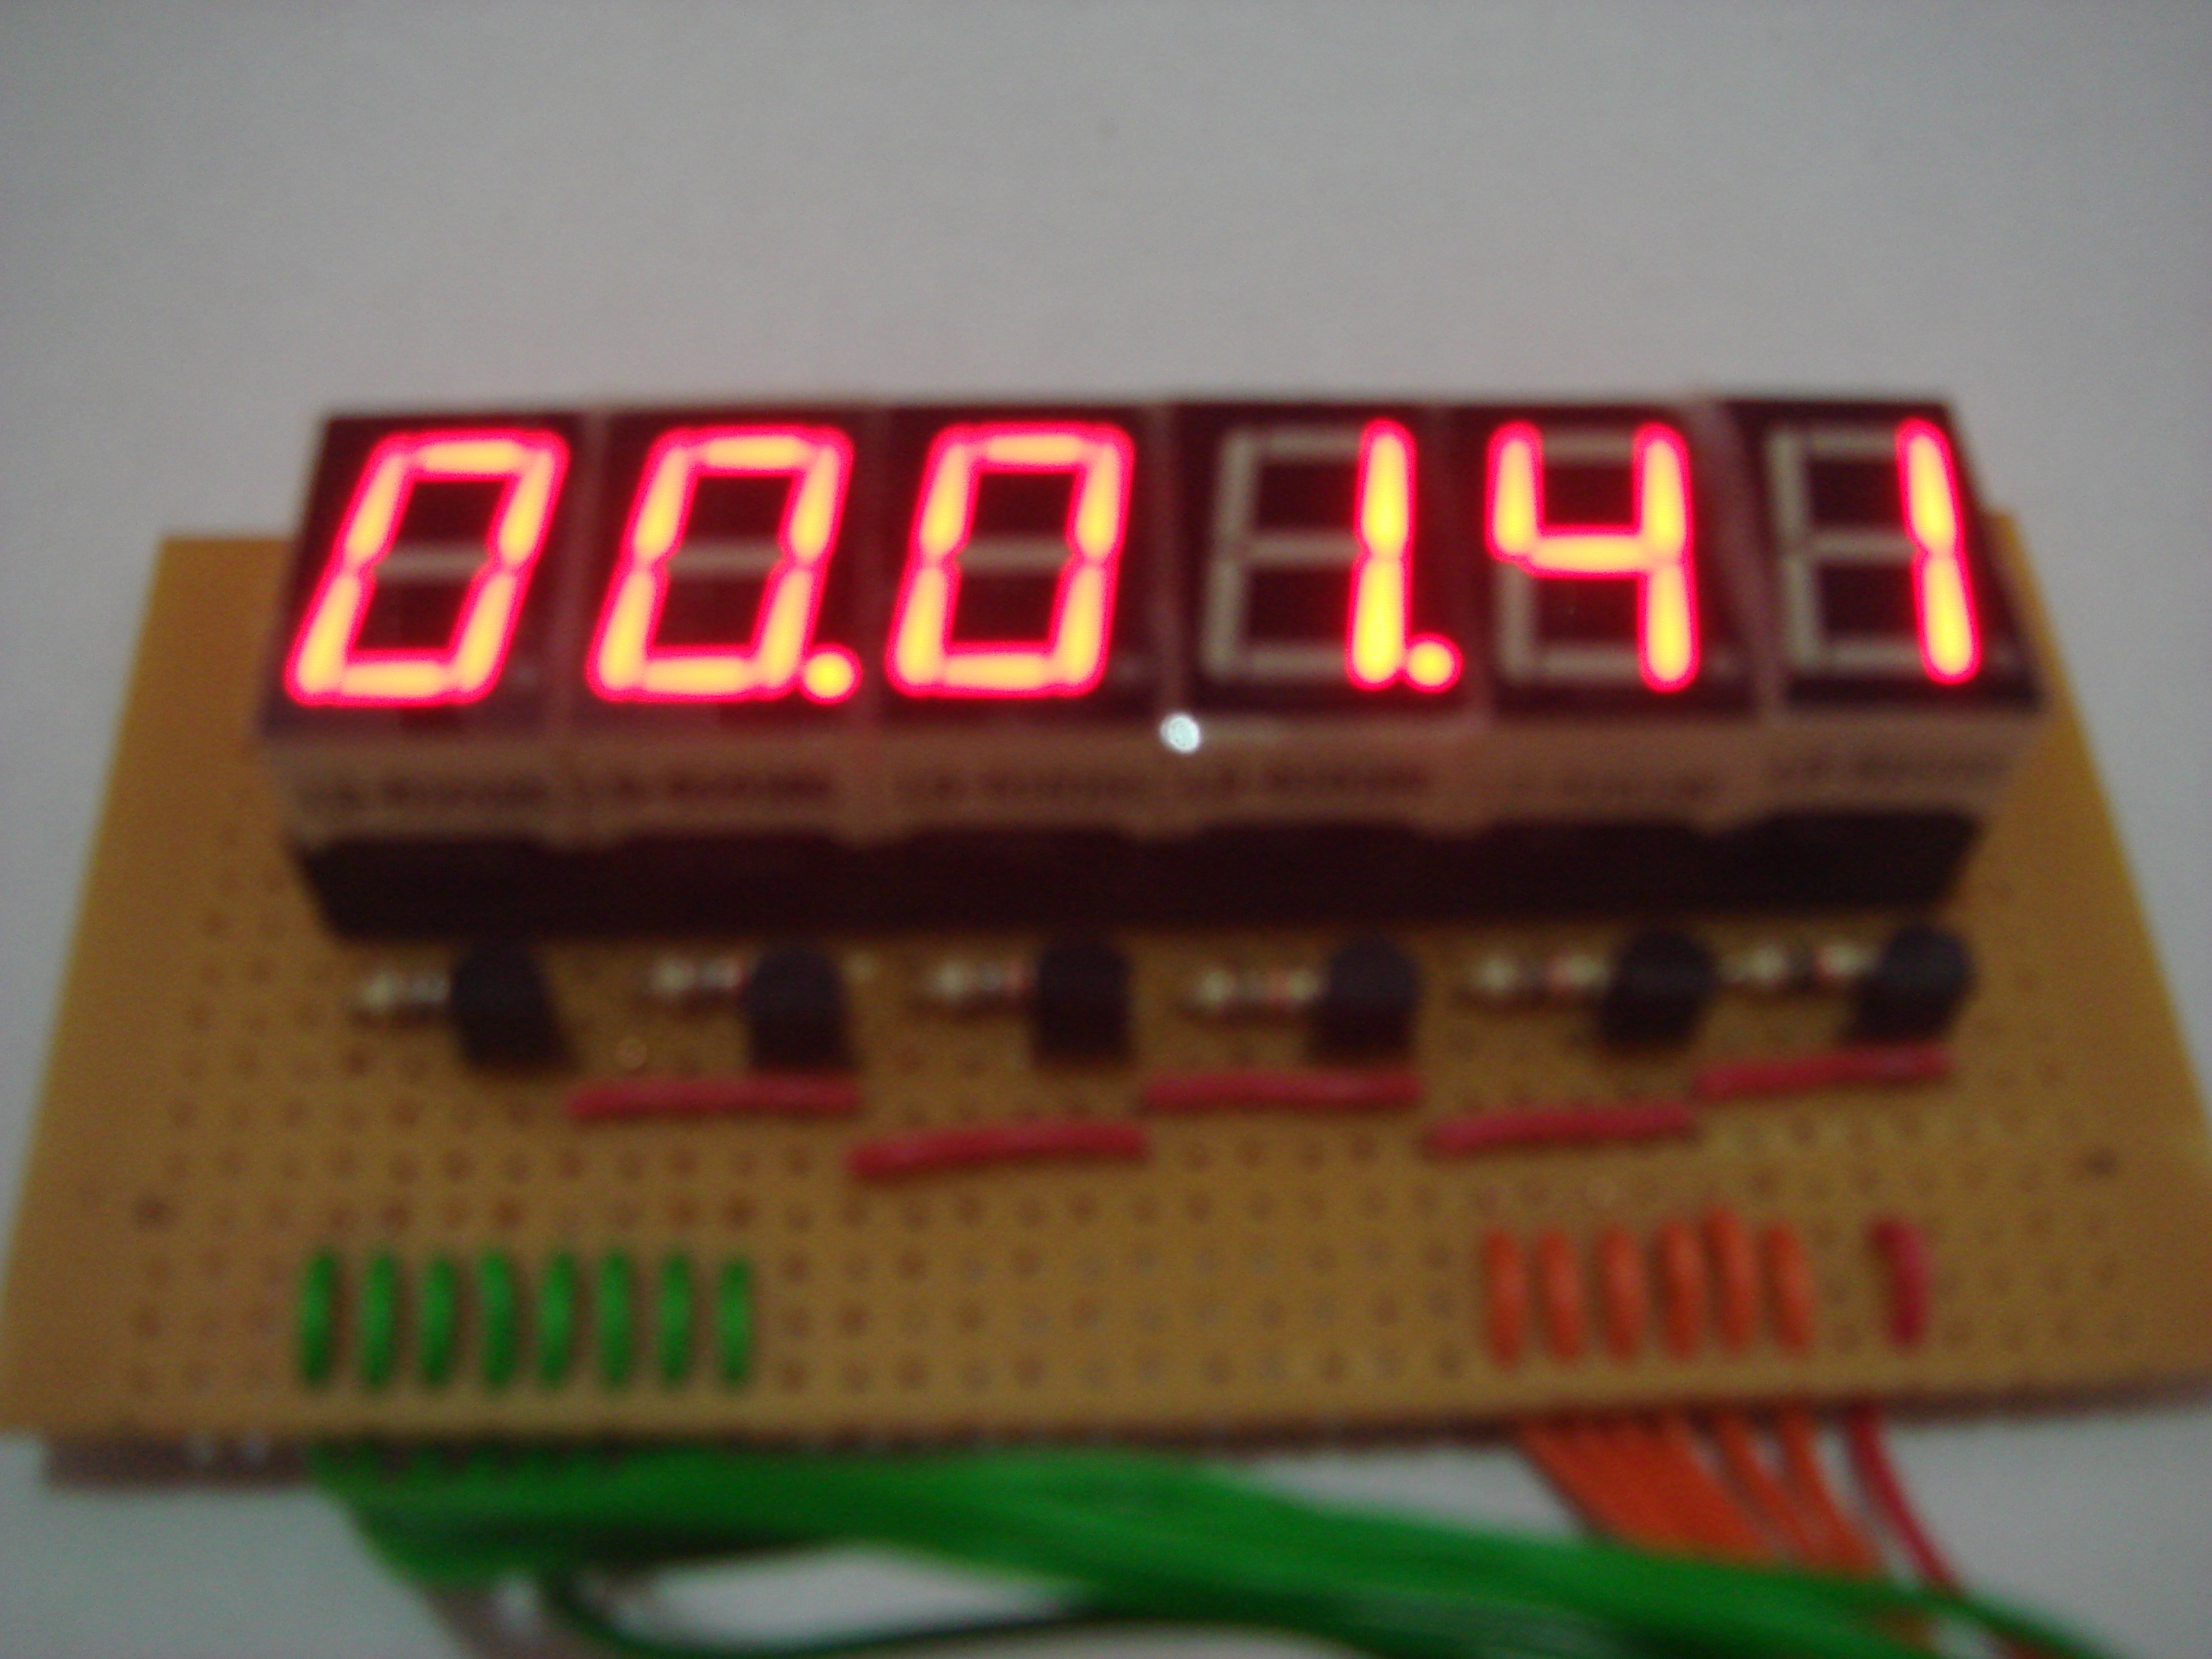 The Circuit Also Has An Ring Sensor Which Is Not Used In The Program